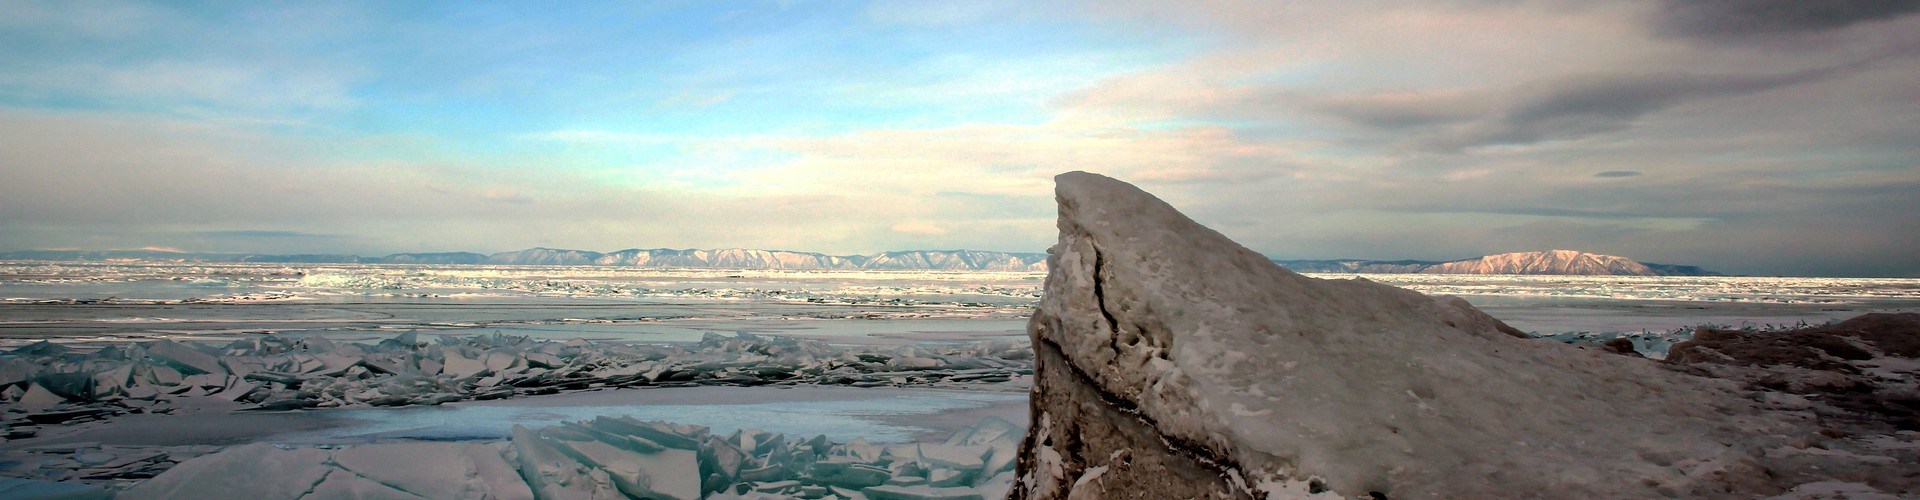 Even in the warmer decades of the present, some lakes – such as Lake Baikal in Russia – can freeze over in winter (Credit: Dmitry Vlasov, via imaggeo.egu.eu)